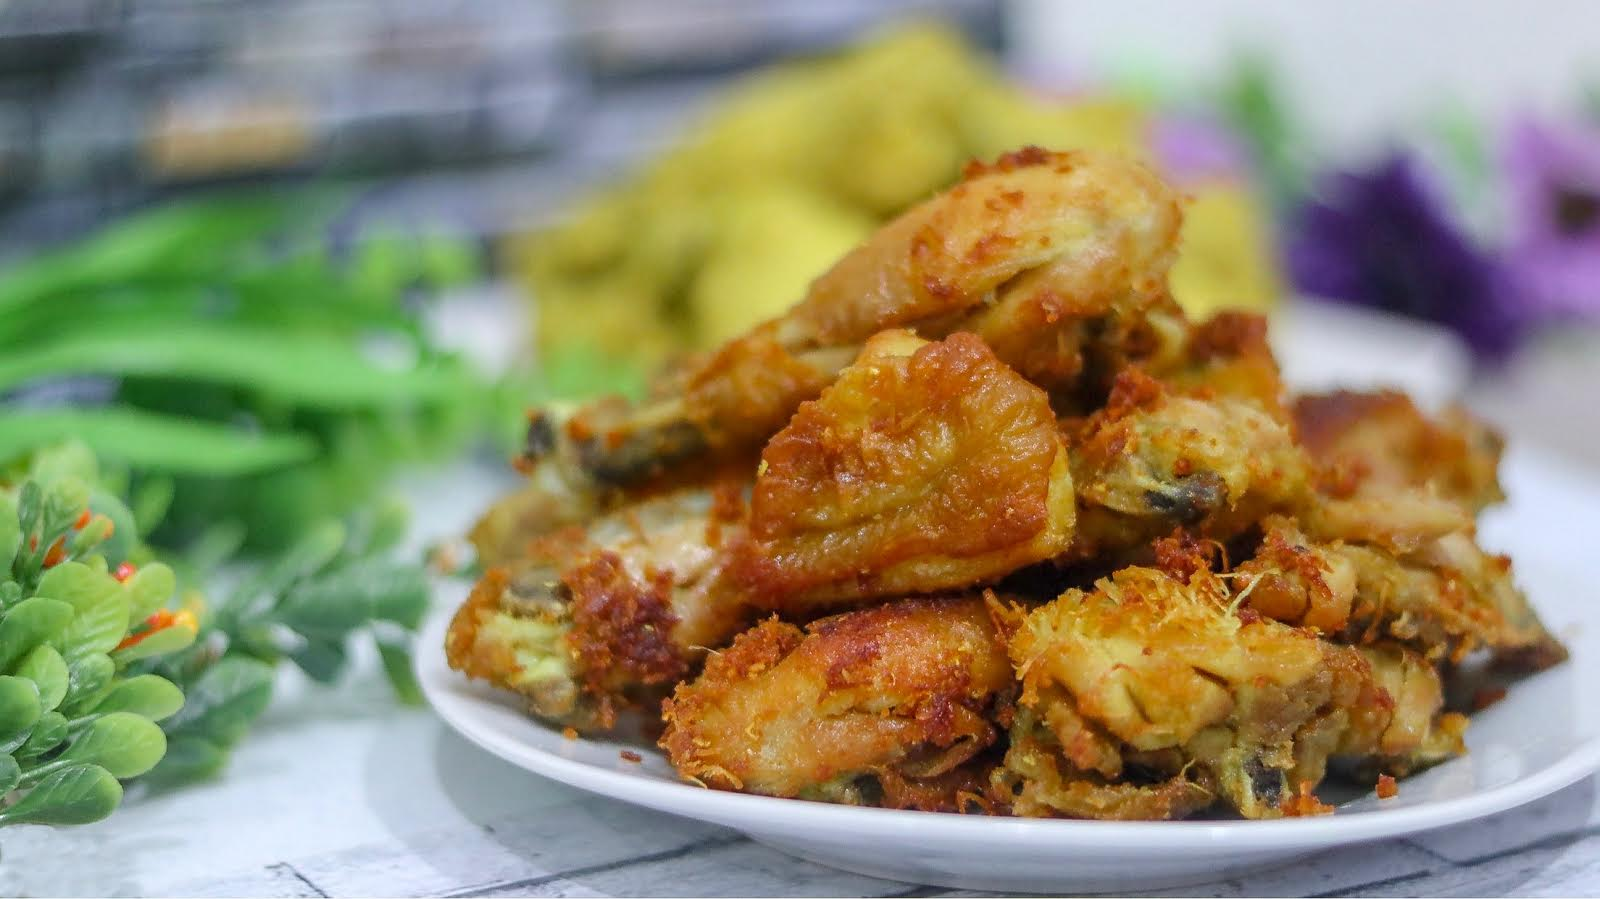 Fried Chicken with Turmeric and Herbs Recipe